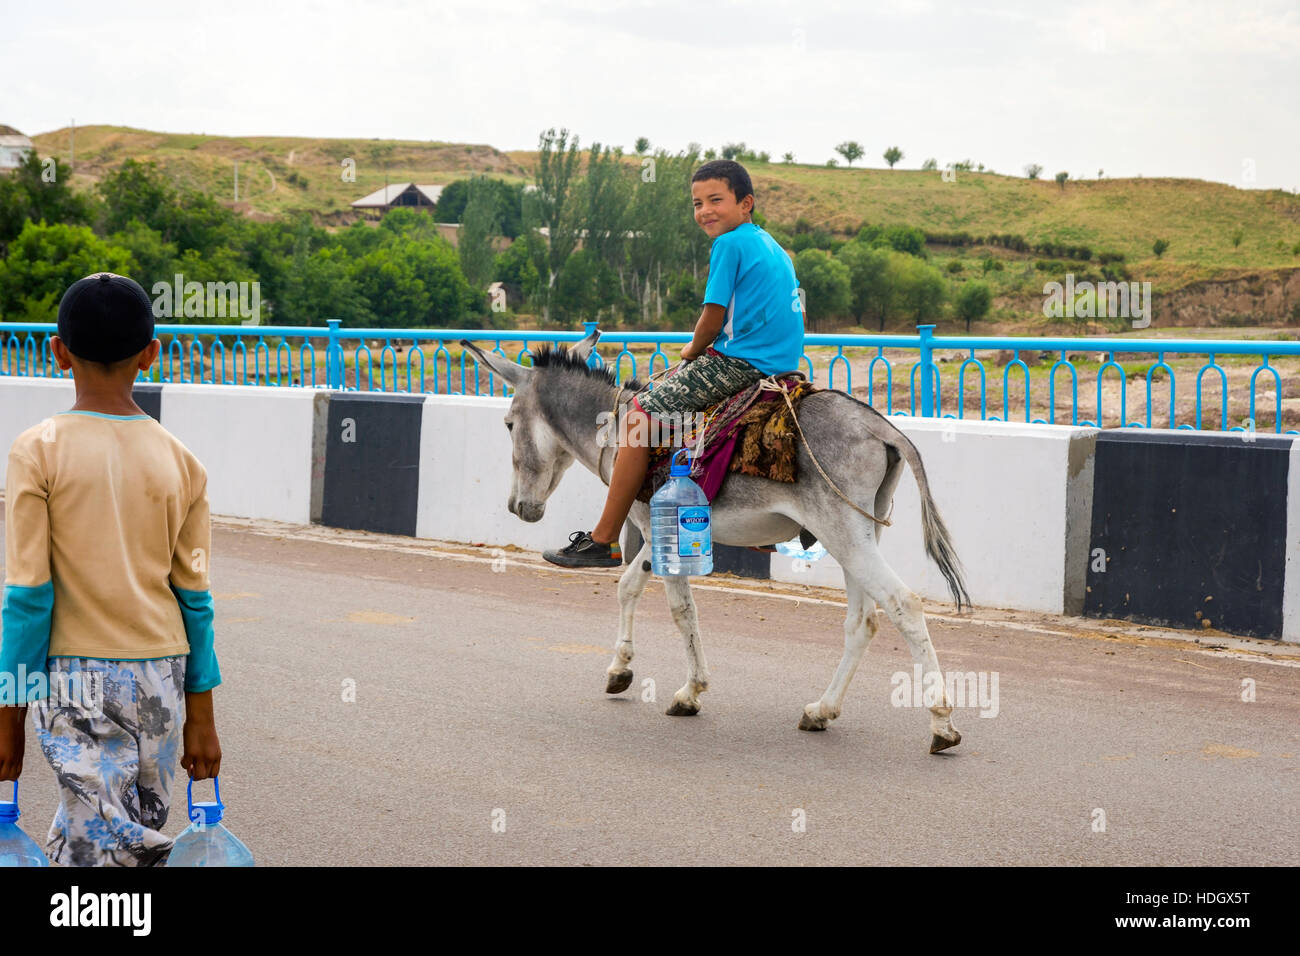 donkey transporting stock photos donkey transporting